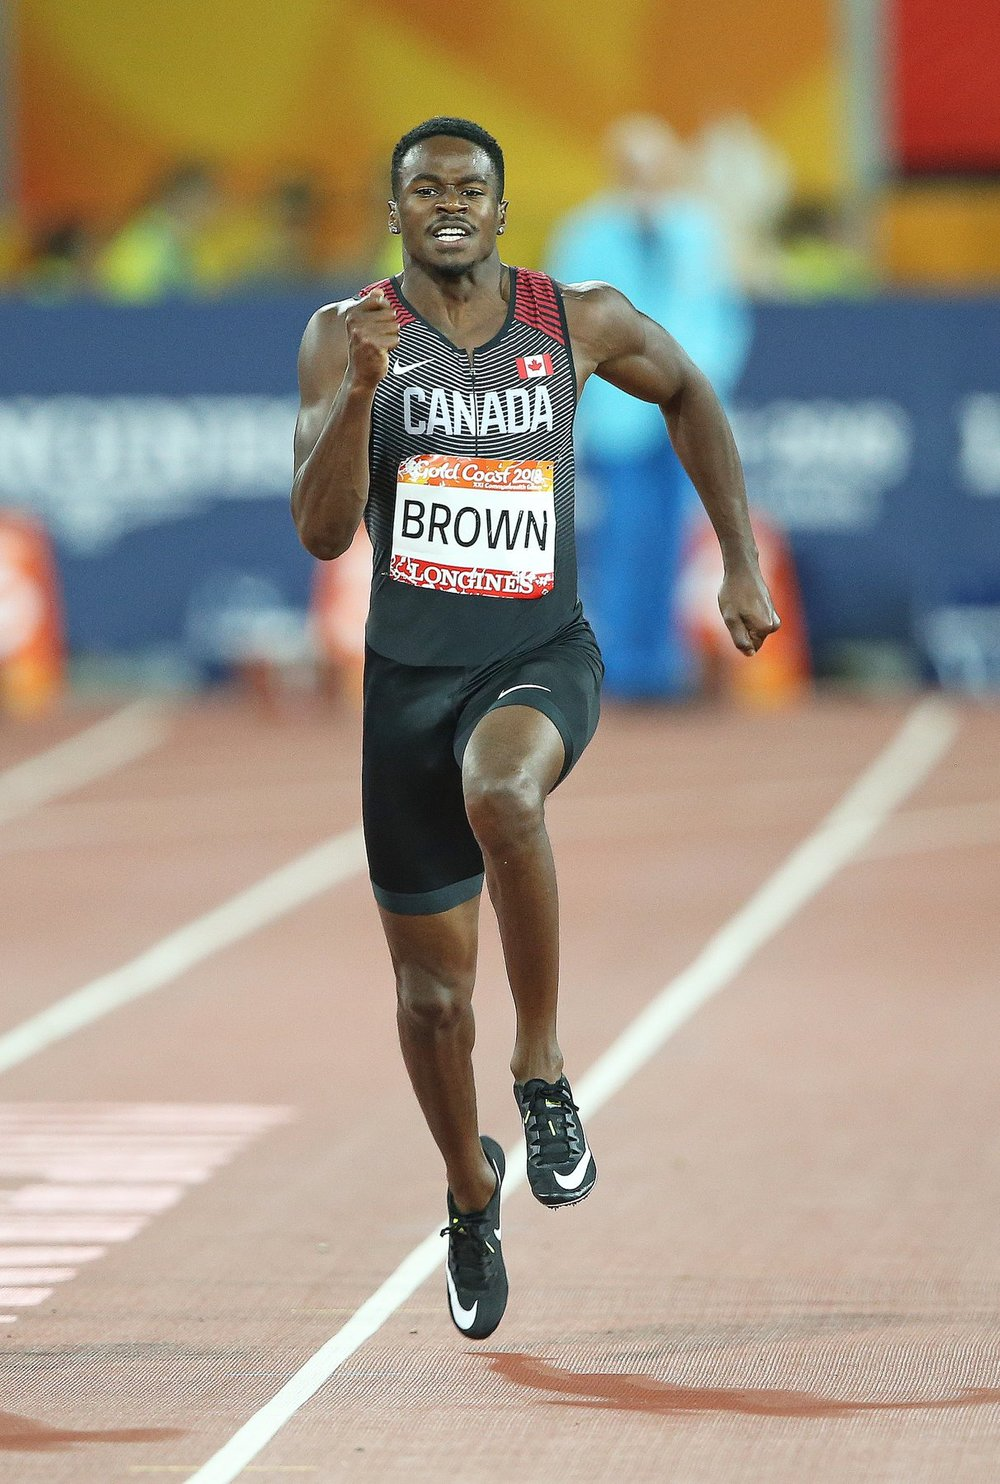 Aaron Kingsley Brown takes silver in Australia's Commonwealth Games this spring.  photo: Athletics Canada